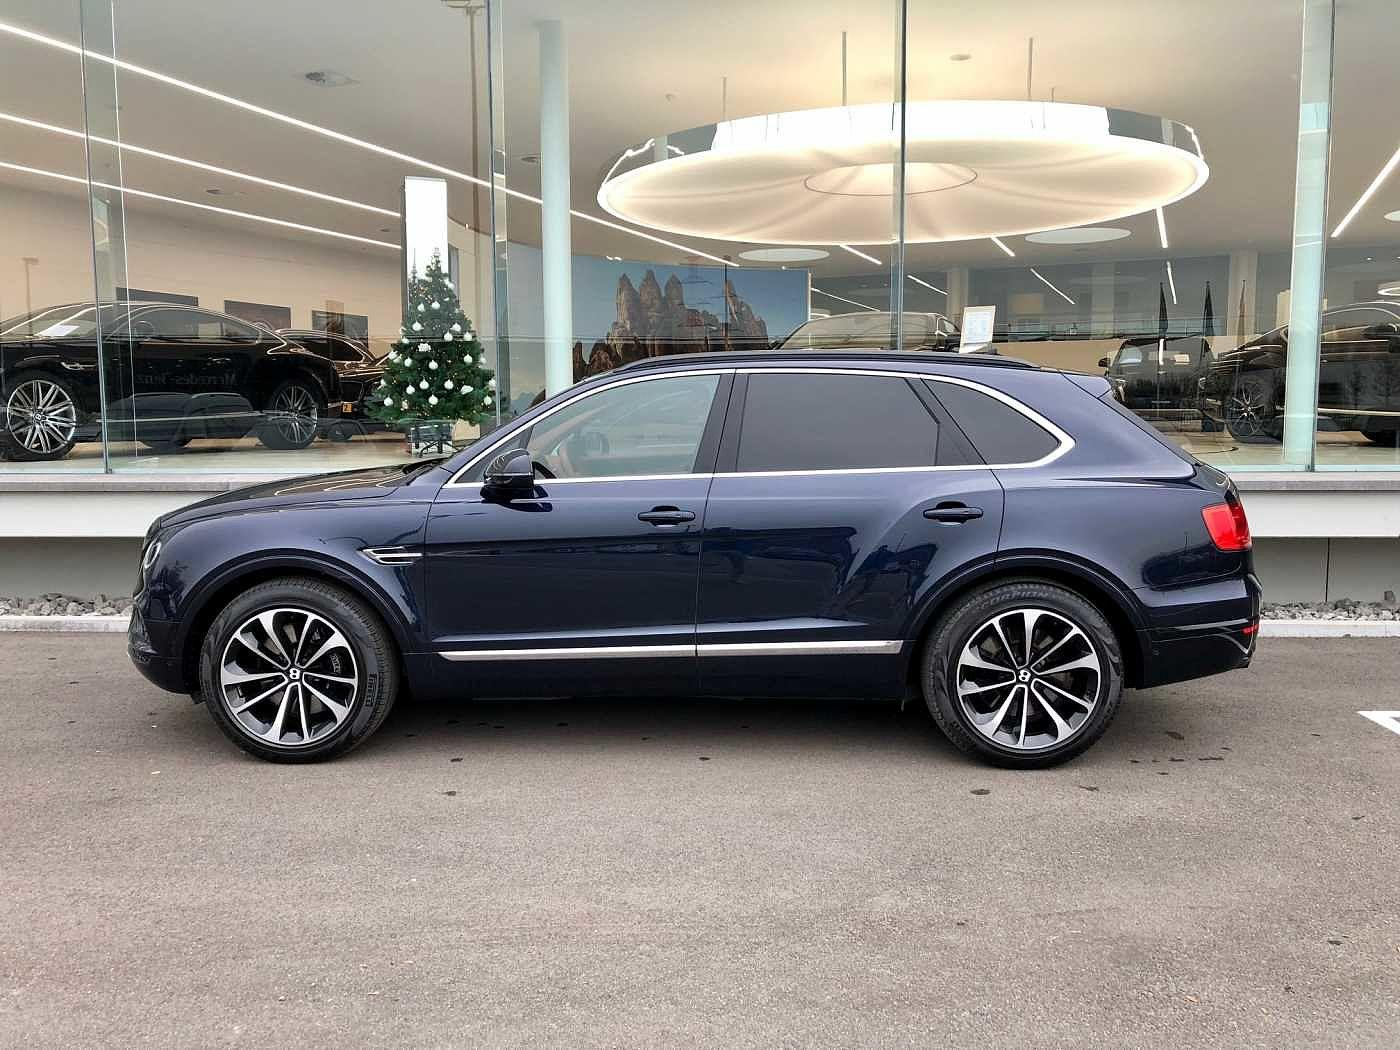 Bentley Bentayga used car for sale in Drogenbos